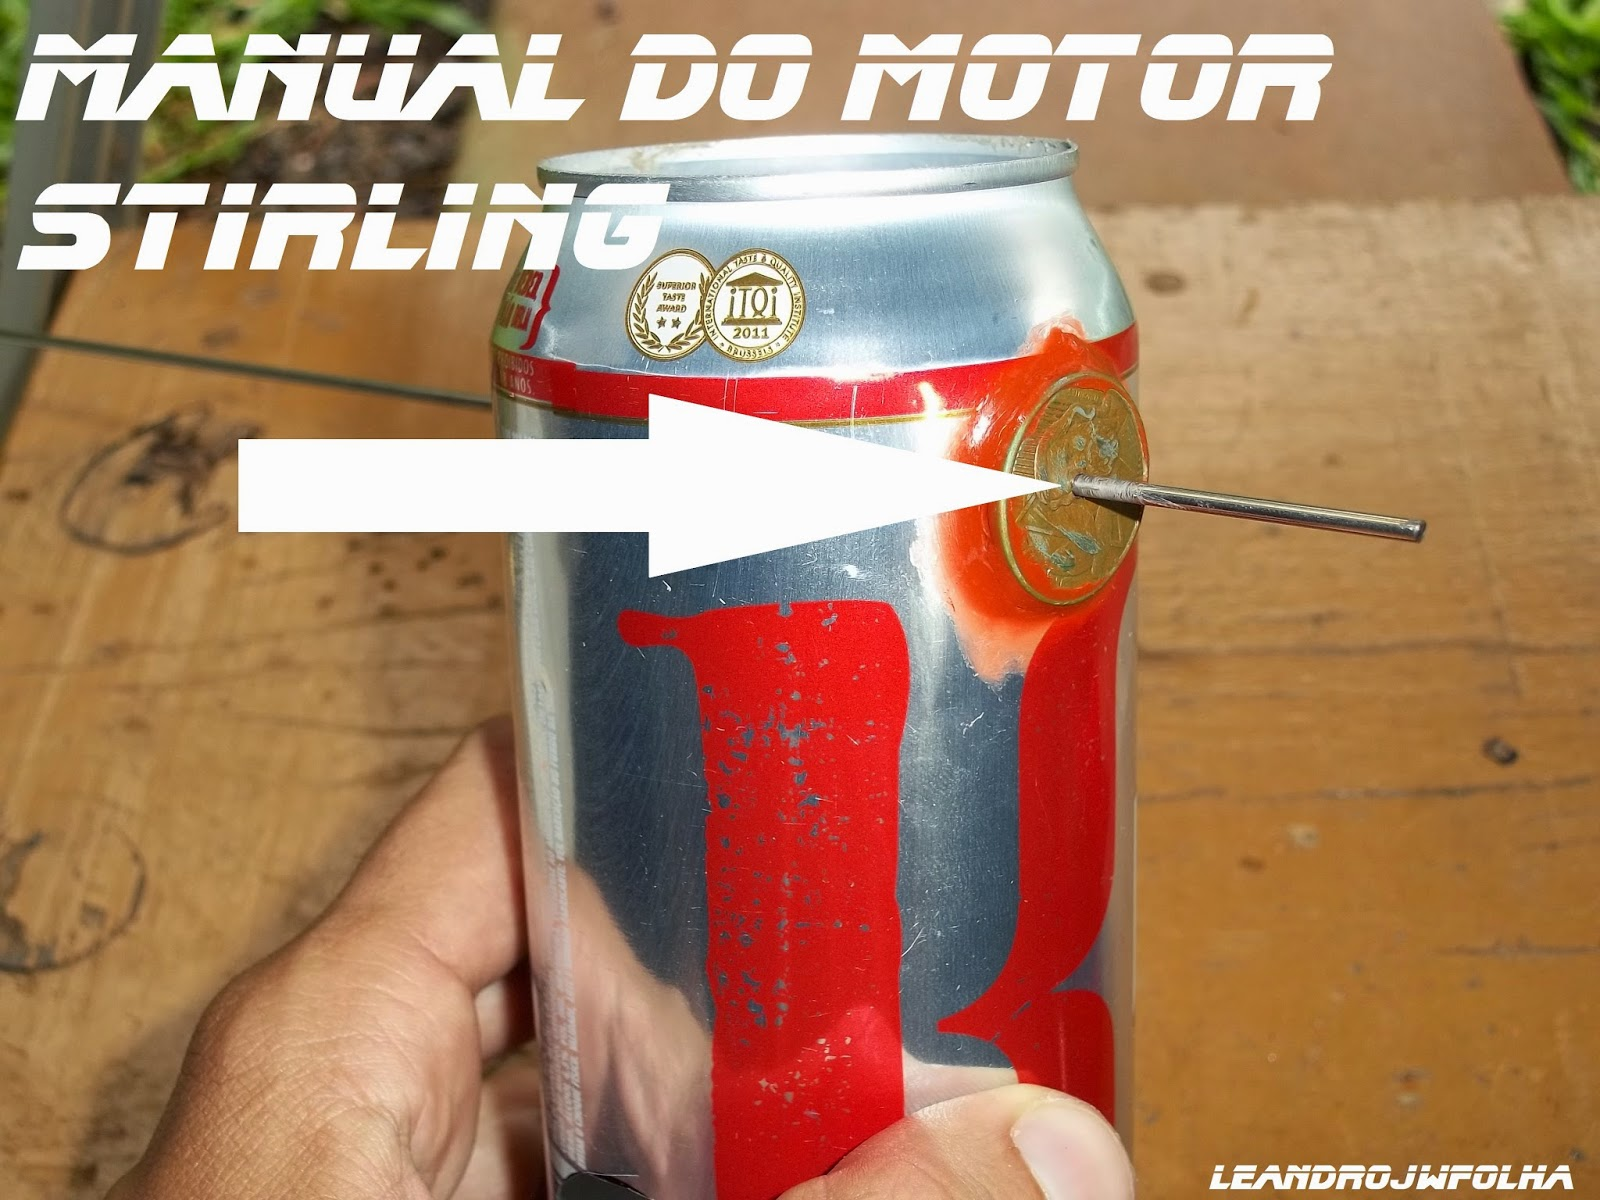 Manual do motor Stirling, mancais feito de moeda de 10 centavos